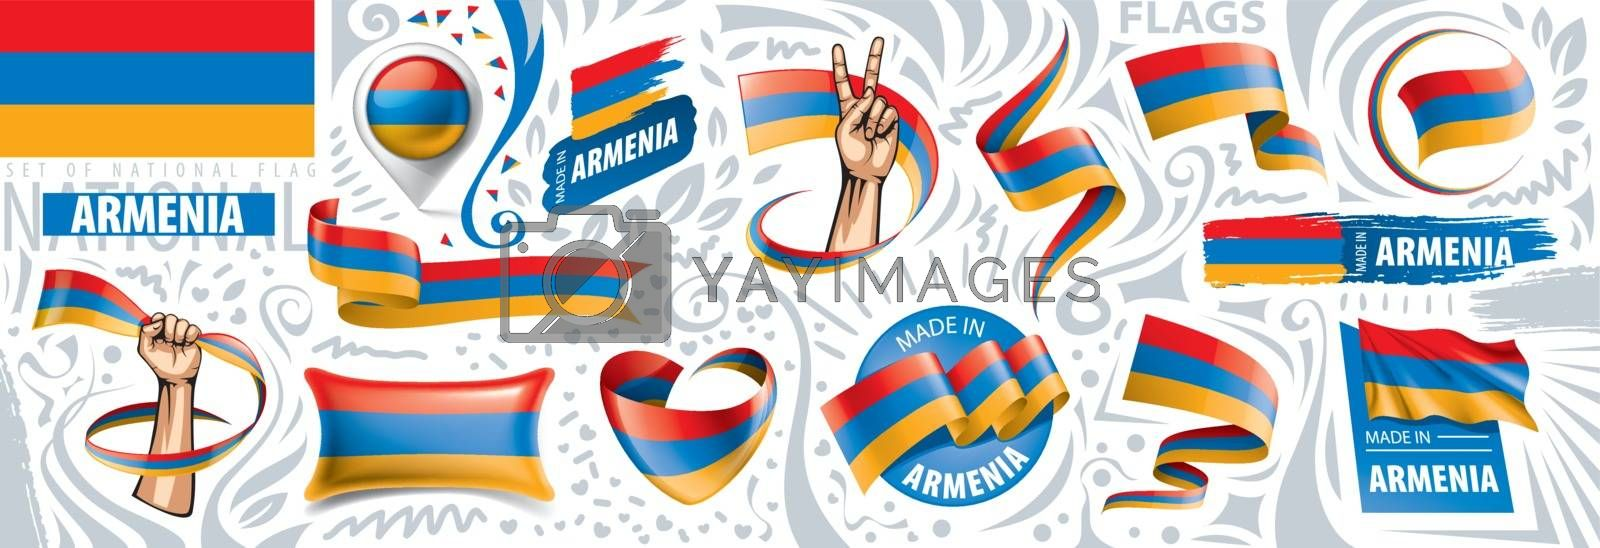 Vector set of the national flag of Armenia in various creative designs.